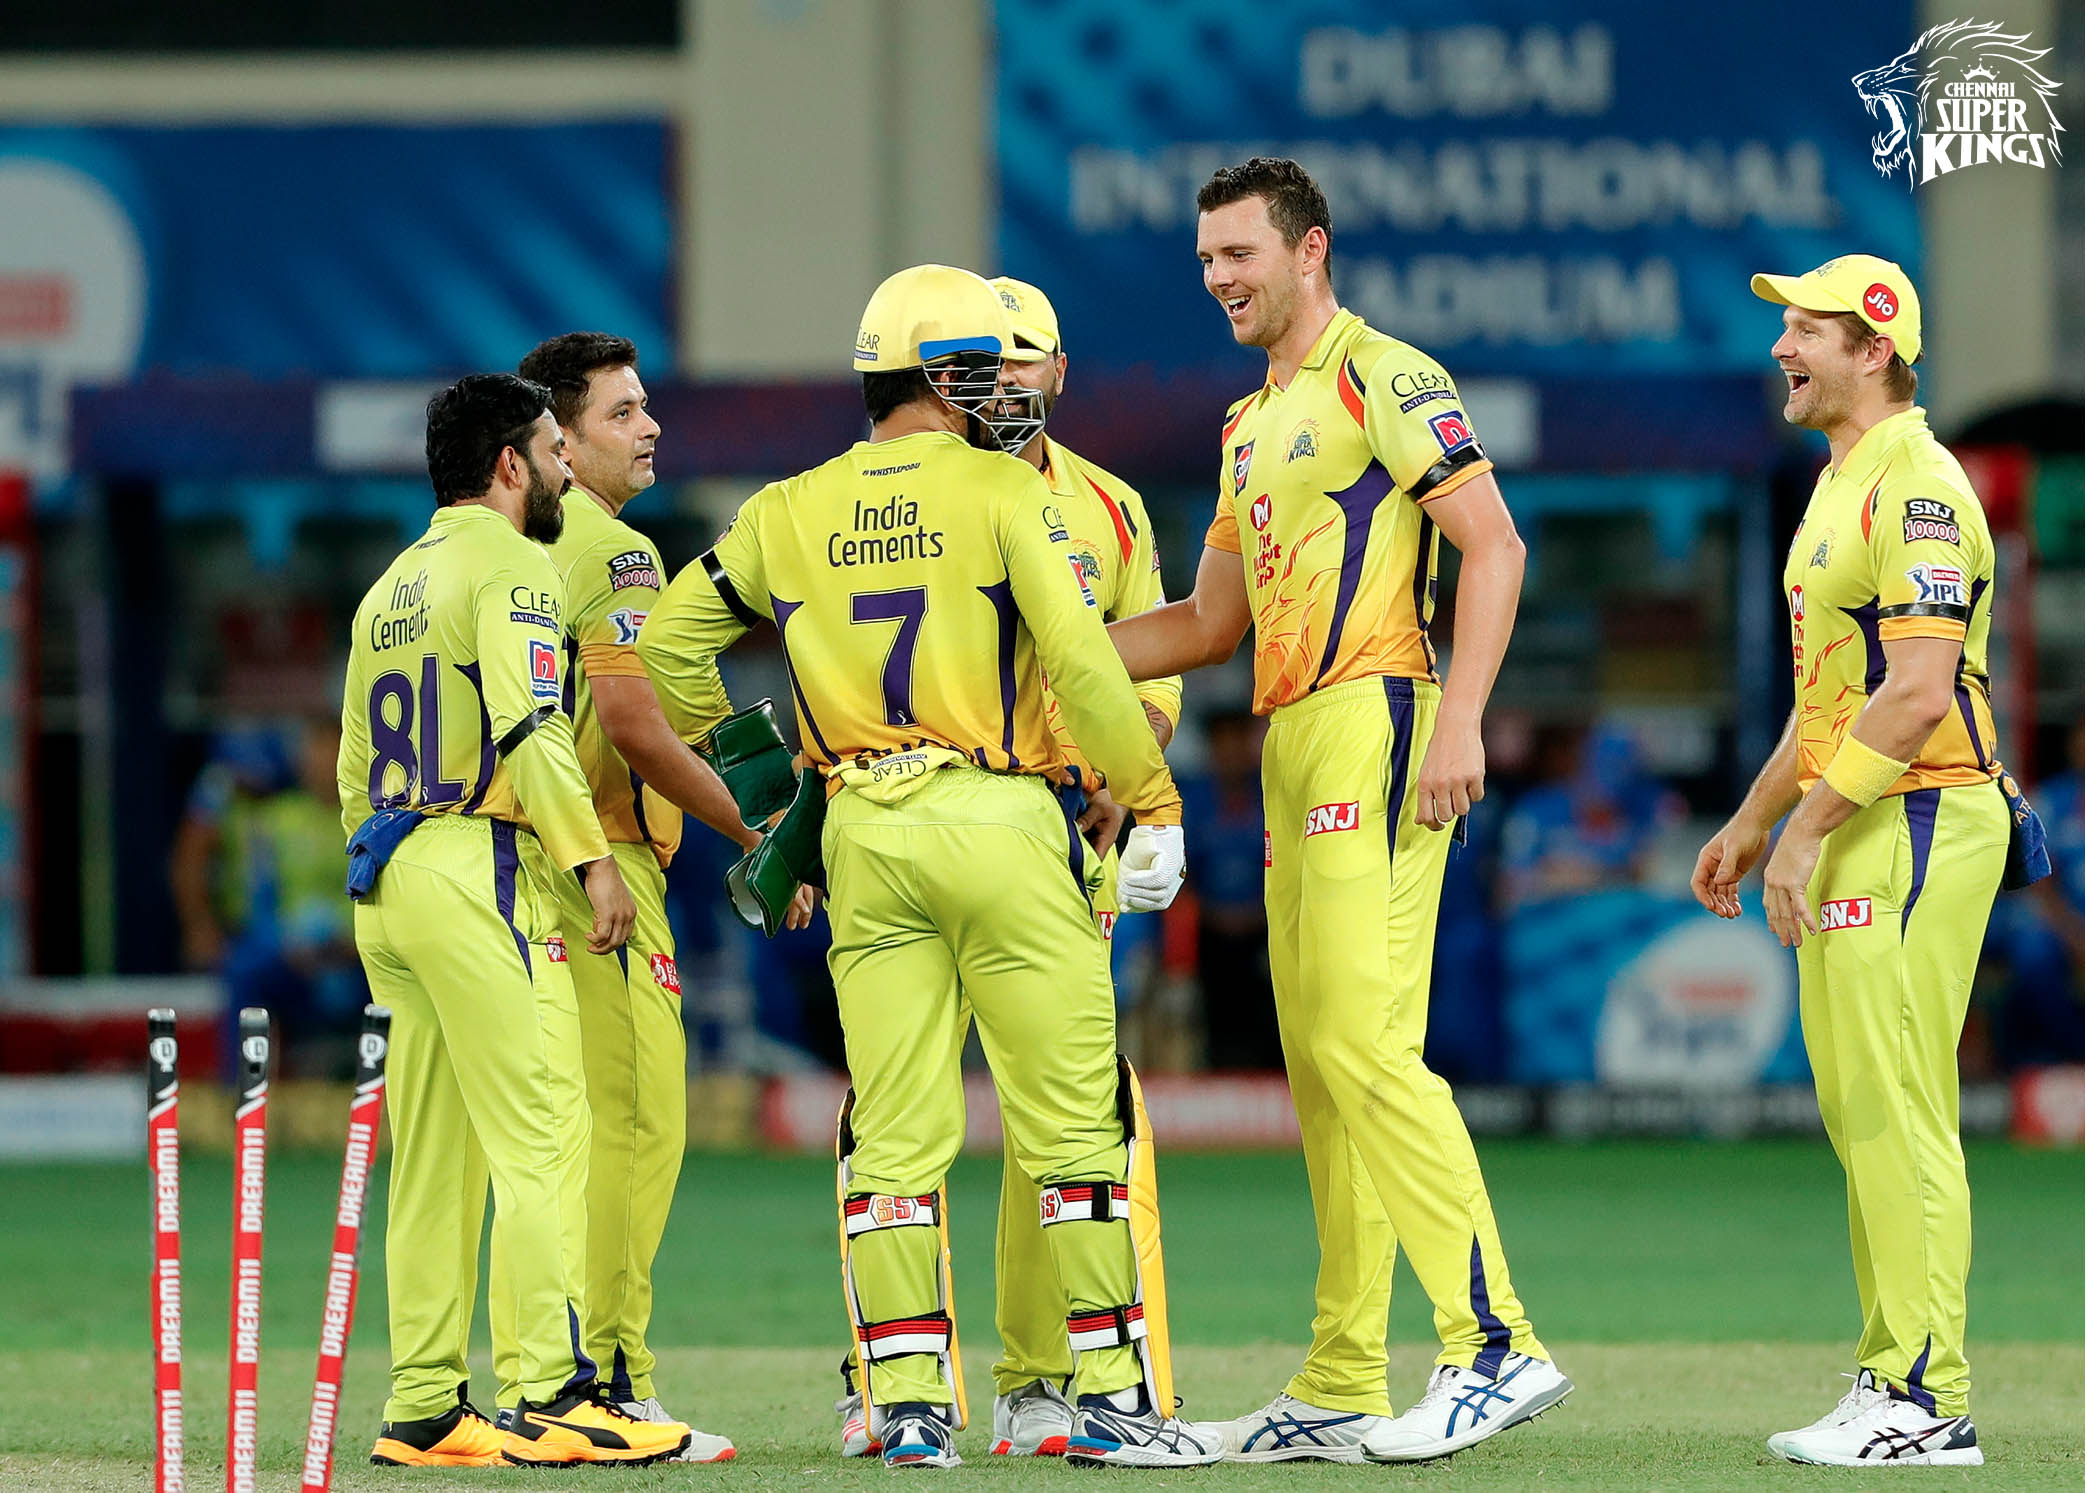 Faf and Watson roar as CSK regain touch with big win over KXIP | The Rahnuma Daily